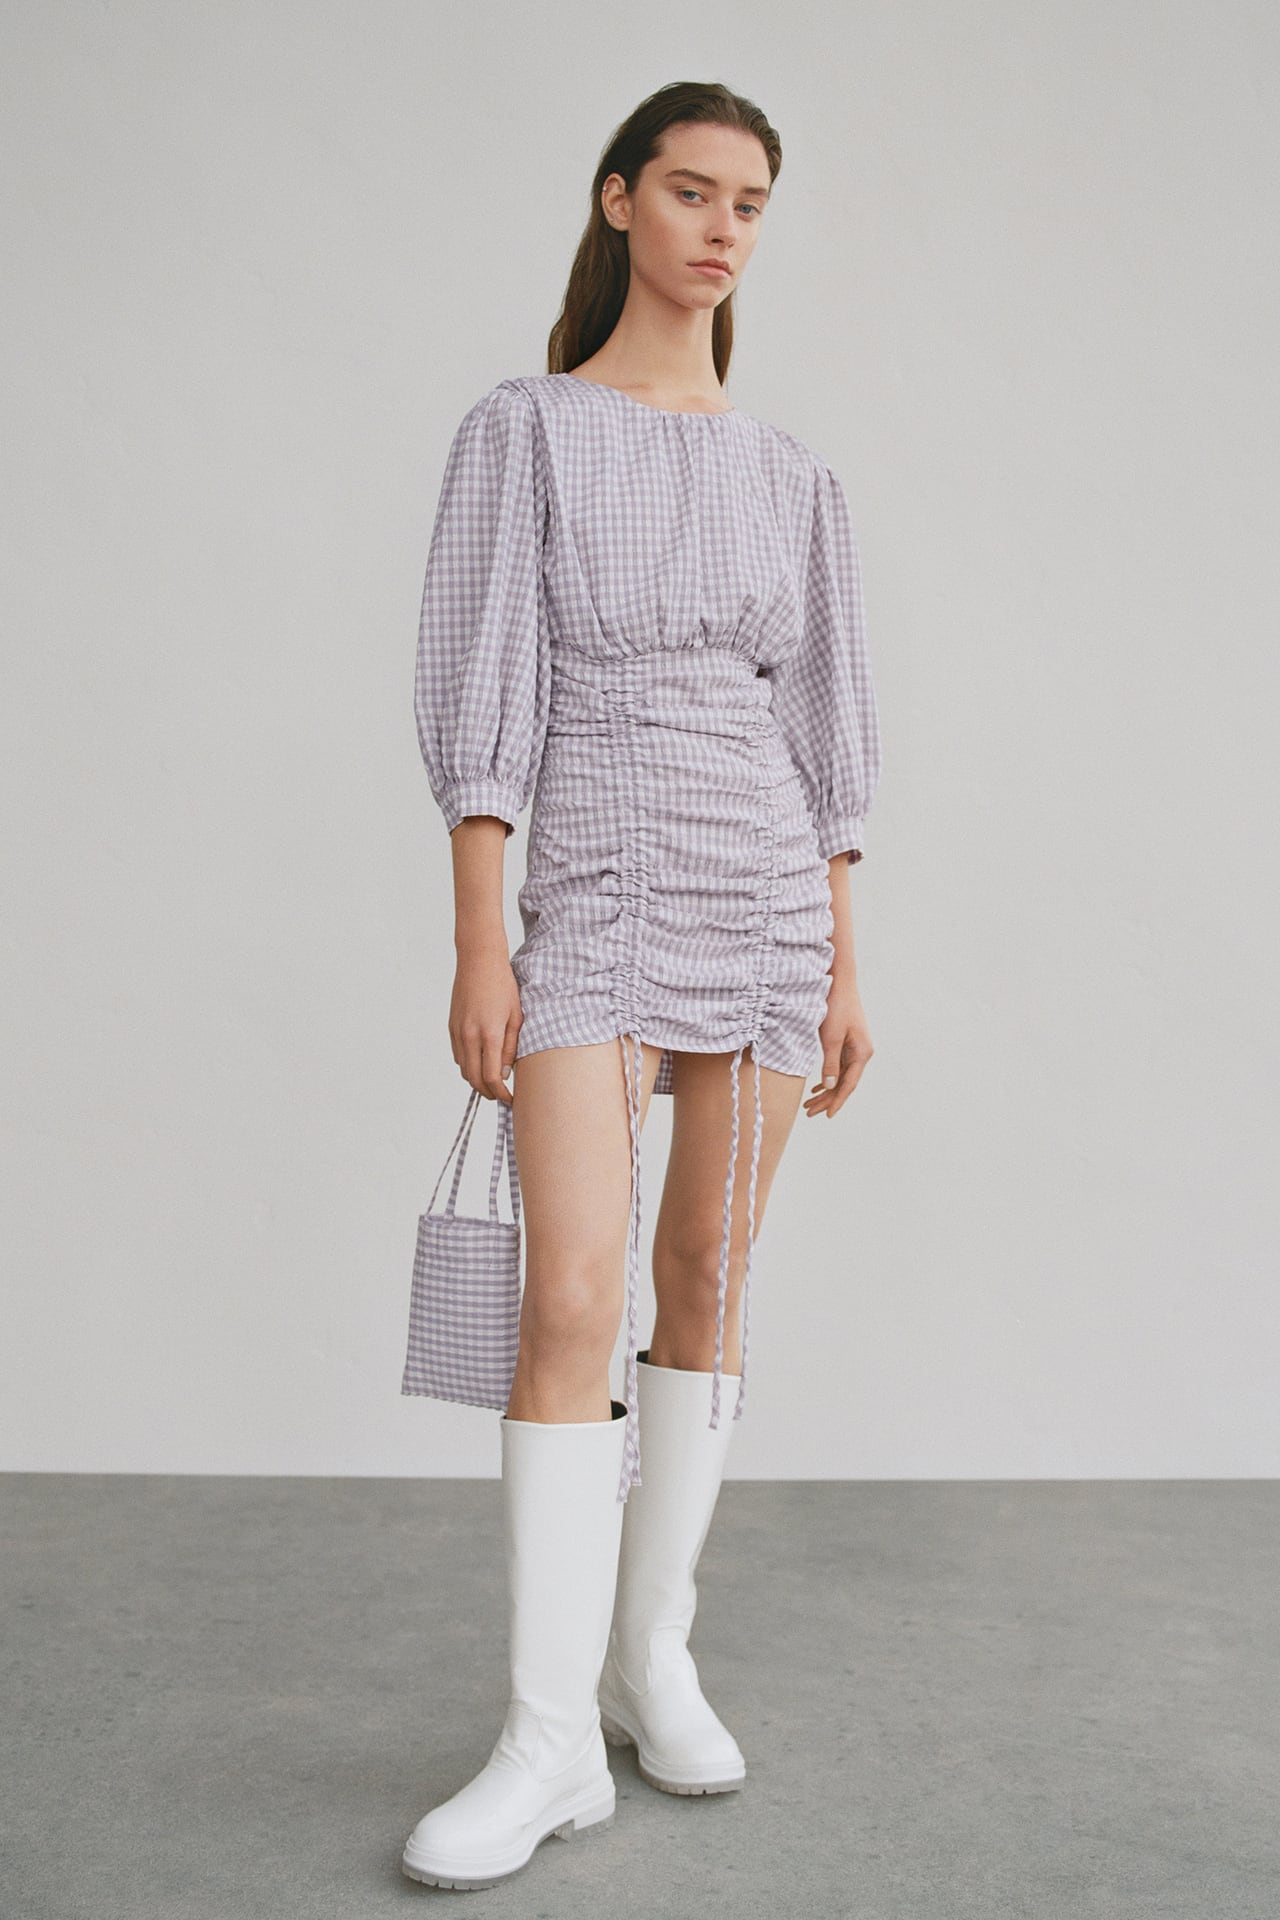 Image 1 of GINGHAM CHECK DRESS from Zadar